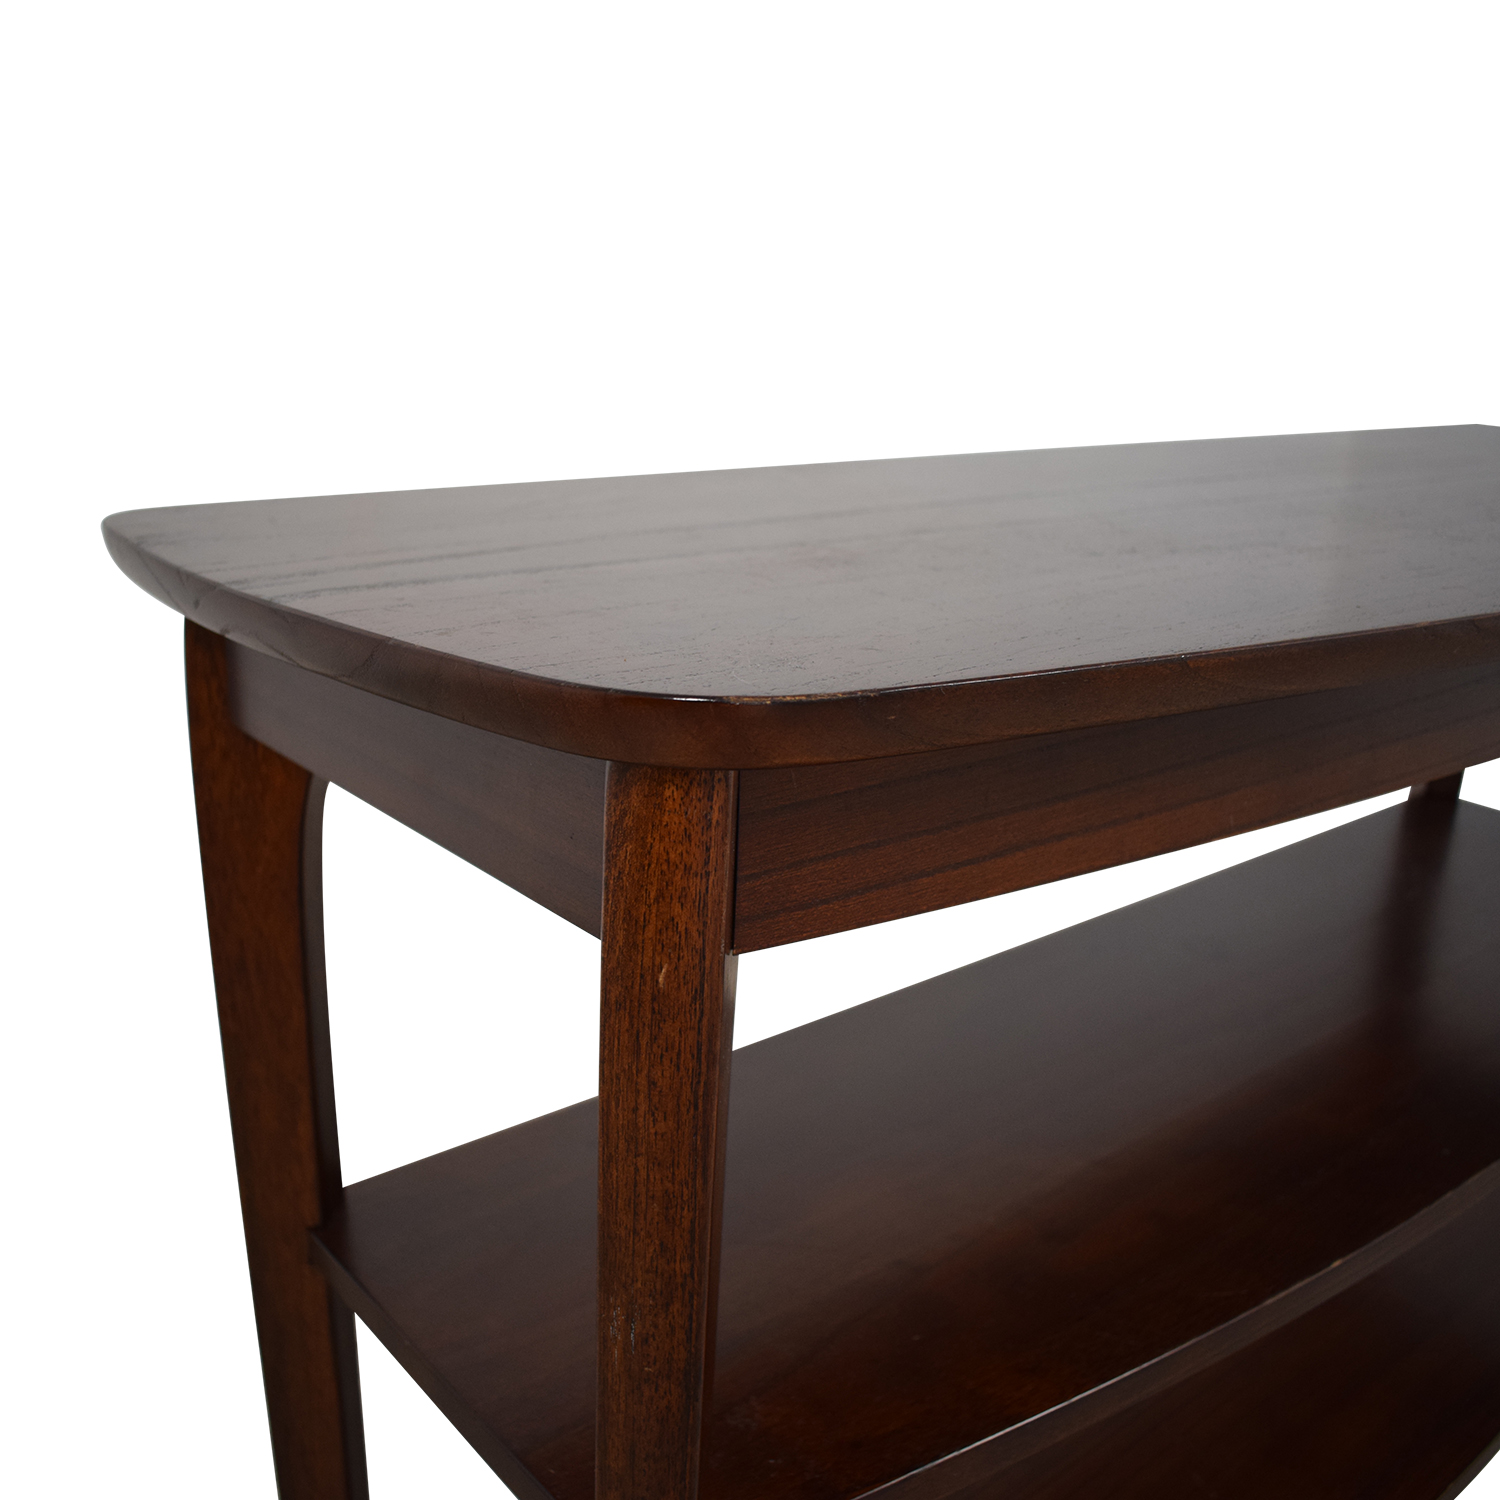 Pottery Barn Pottery Barn Console Table for sale